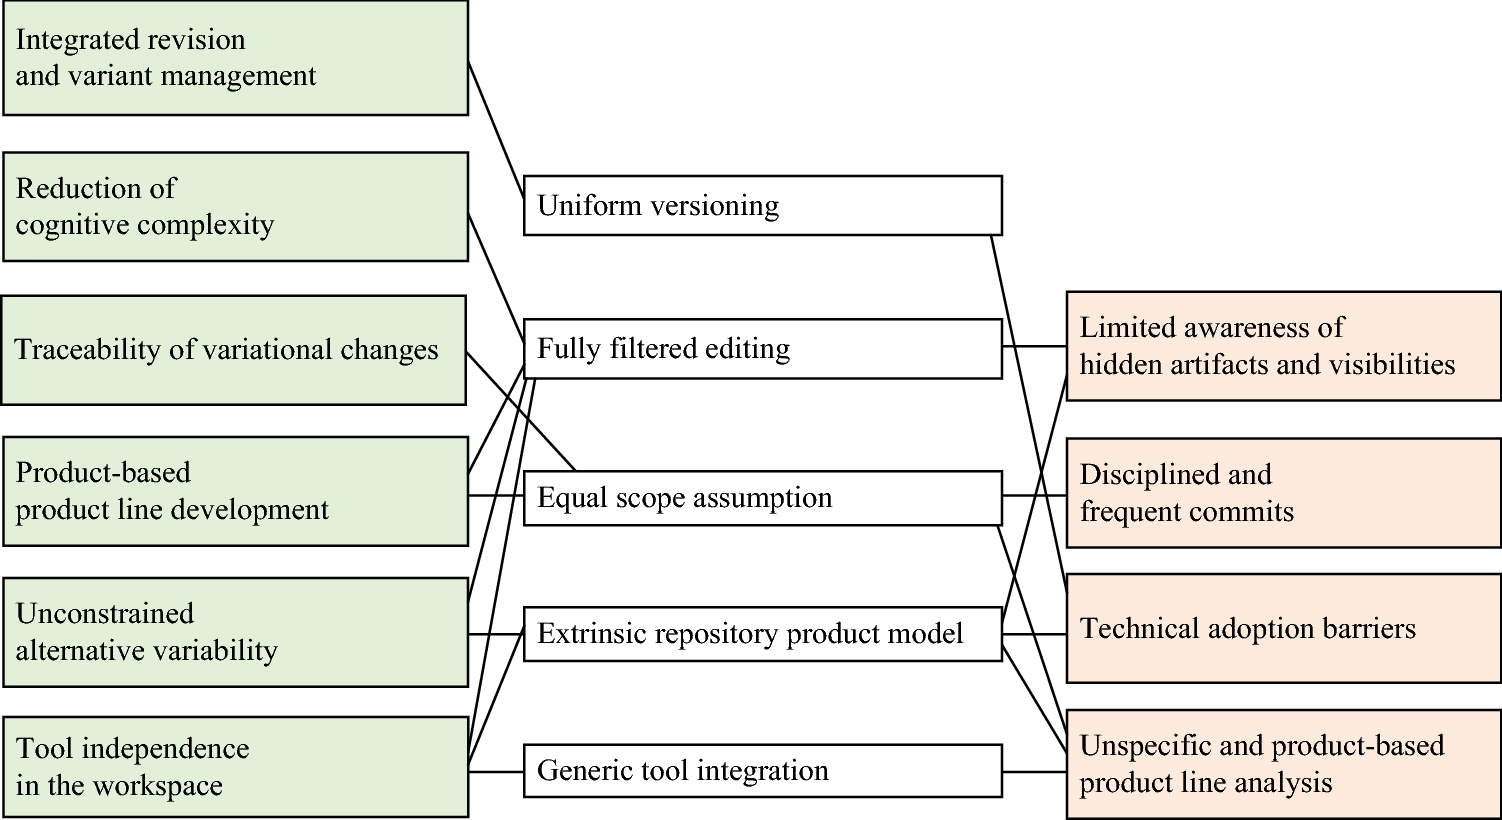 Integrated revision and variation control for evolving model-driven